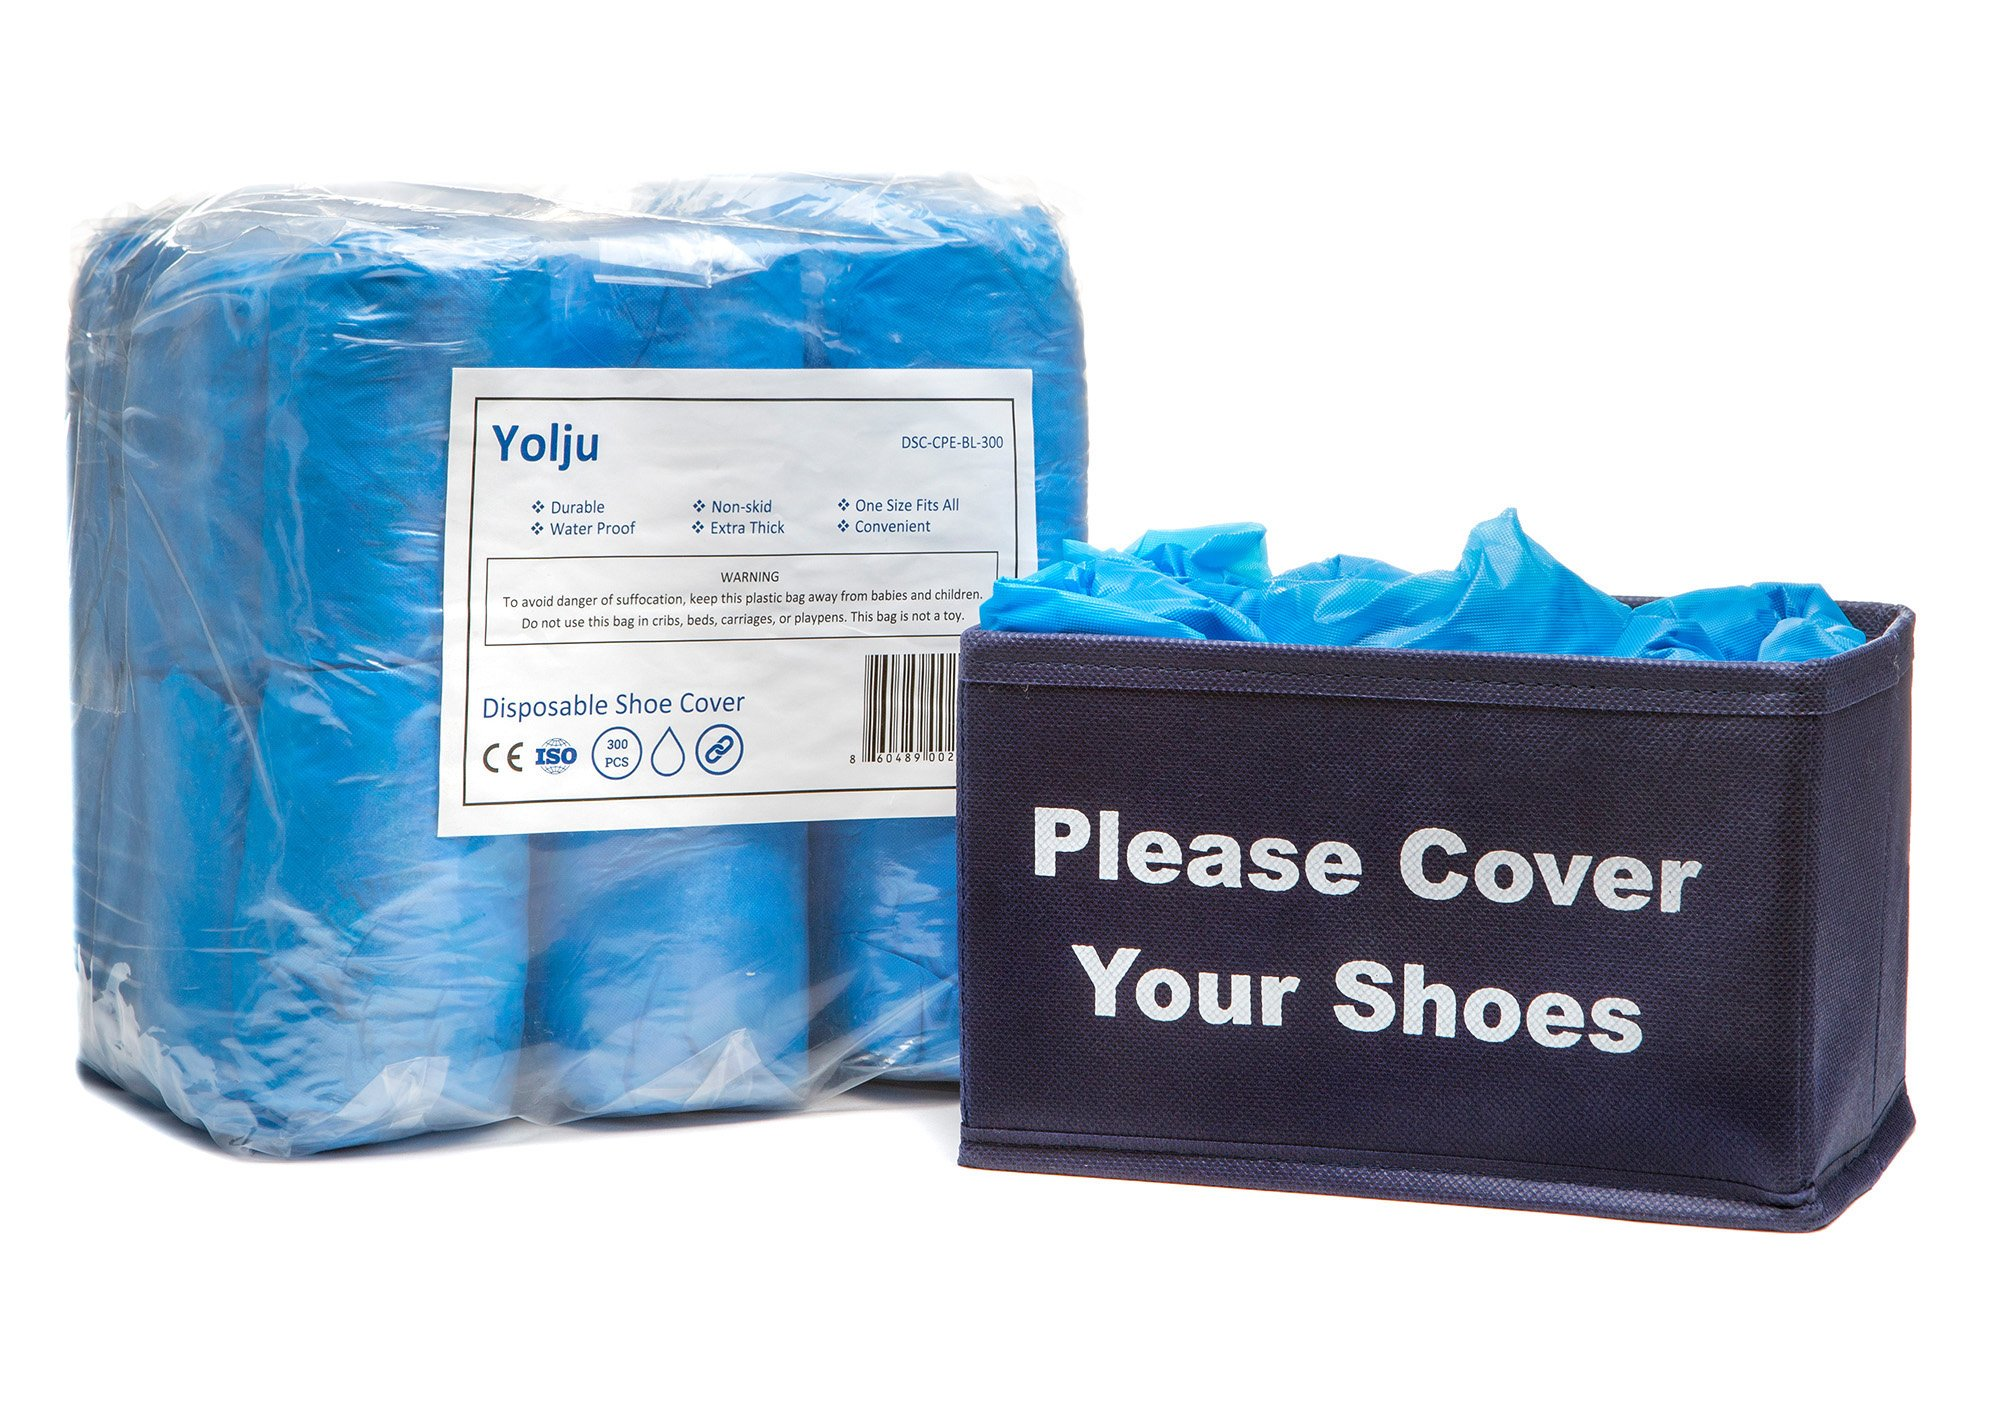 Yolju 300 Pack Disposable Shoe Covers with a Bonus Small Storage Box | Waterproof, Non Slip, Durable CPE Material by Yolju